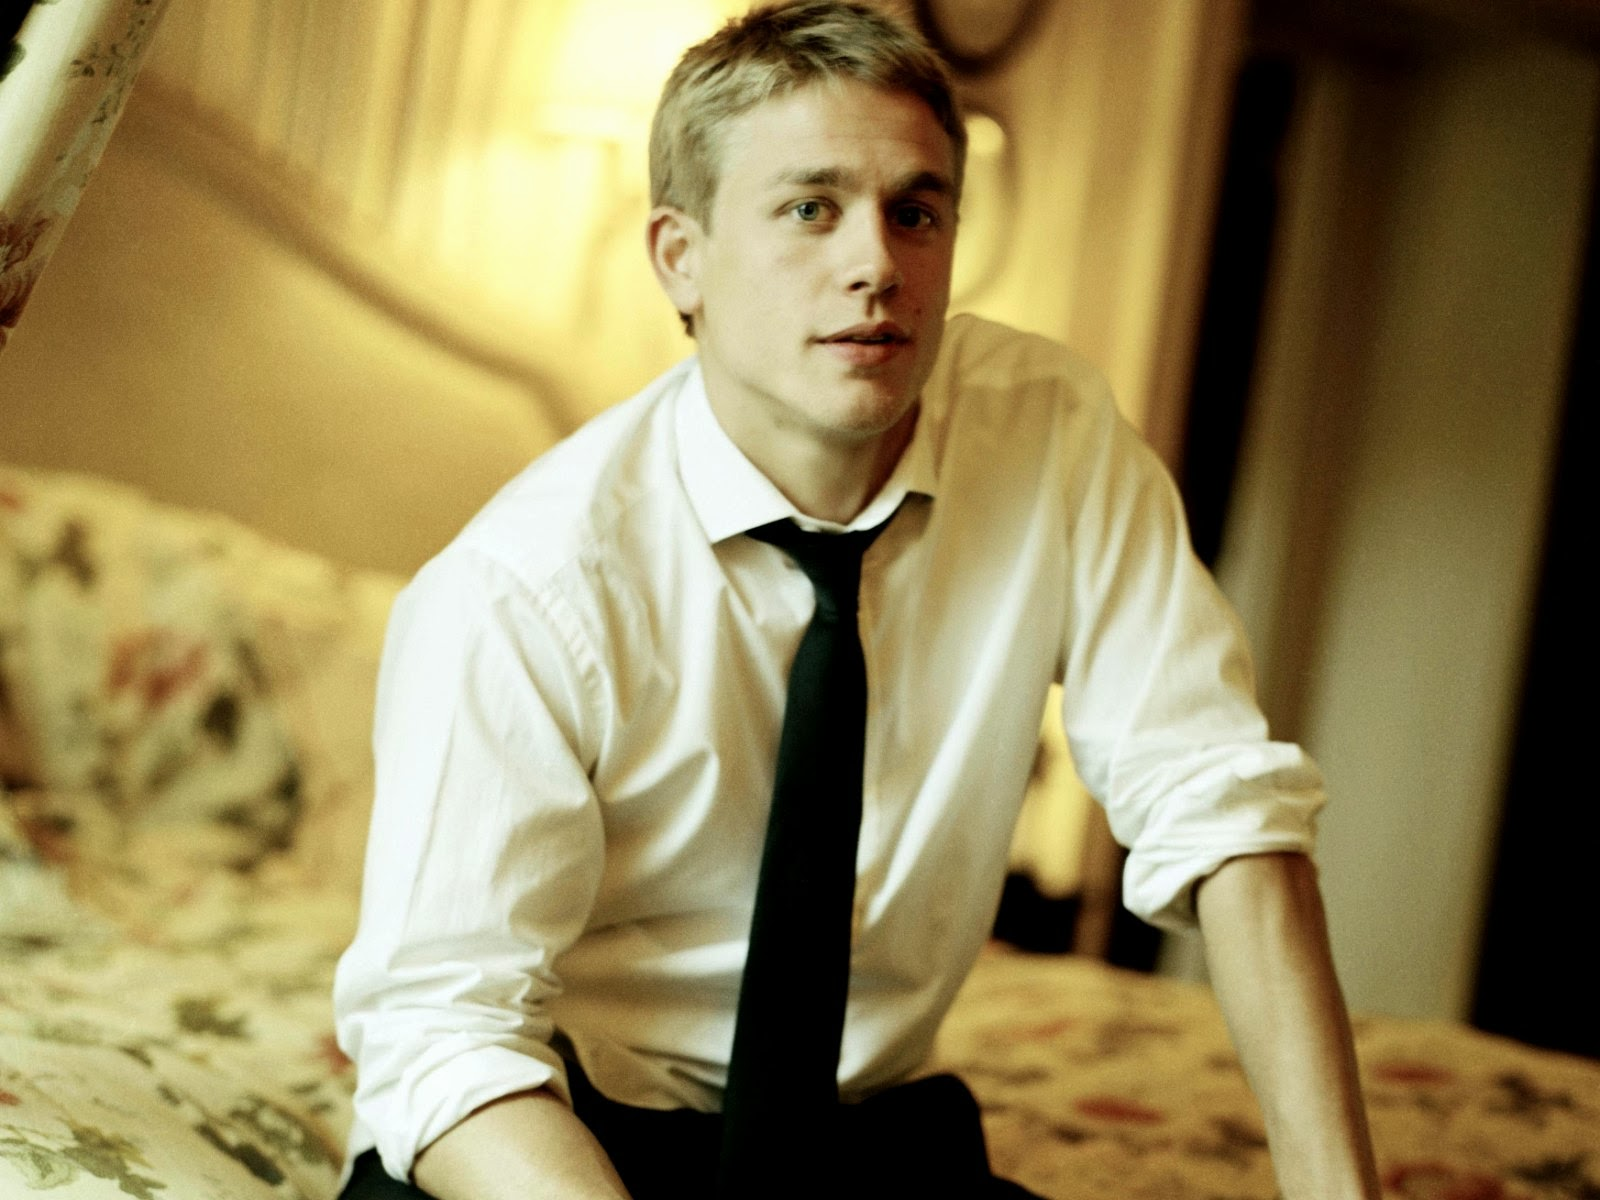 Free Download Charlie Hunnam Wallpaper 1600x1200 For Your